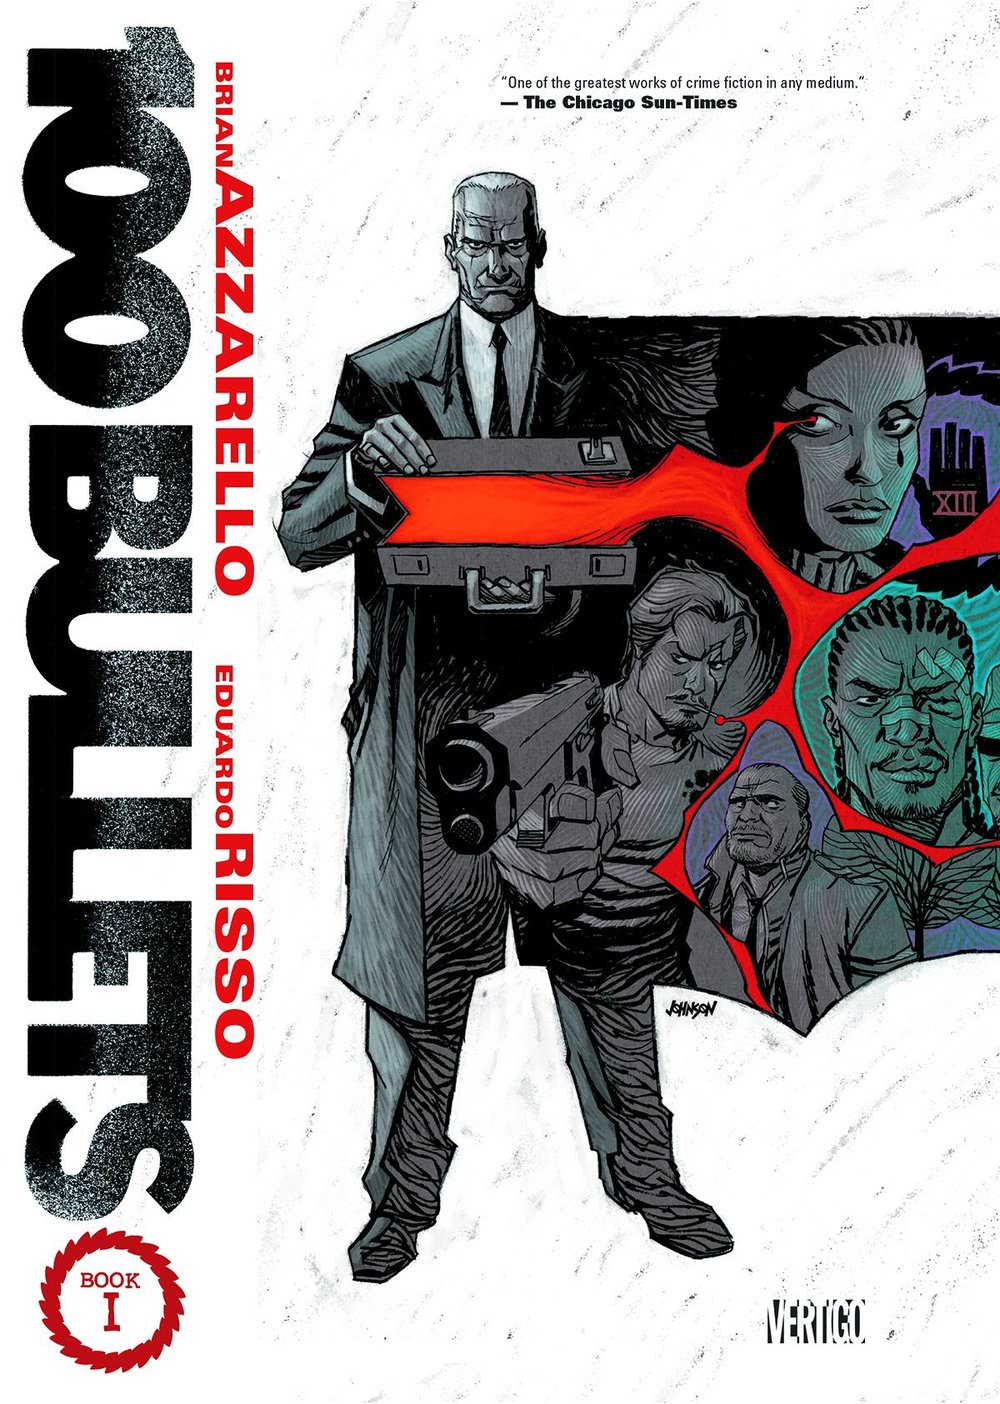 100 Bullets TP Book 1 - Lauren's Pick (Part 2)A creepy old man hands you a briefcase. Inside is a gun, one hundred bullets of untraceable ammunition, and a photo of the person responsible for ruining your life. 100 Bullets is a story built on this simple moral quandary, following the mysterious Agent Graves as he travels the country dispensing the option of revenge—or justice?—to individuals who at first seem randomly selected. As the tale unravels over the course of its hundred-issue run, questions answered lead to new, bigger mysteries. Lives interconnect and are cut short, clues are hidden, and a conspiracy dating back hundreds of years is revealed. Brian Azzarello (Moonshine, Dark Knight III: Master Race) and Eduardo Risso work together masterfully to execute this sprawling work, a stellar example of modern noir fiction for fans of Sin City and Scalped.